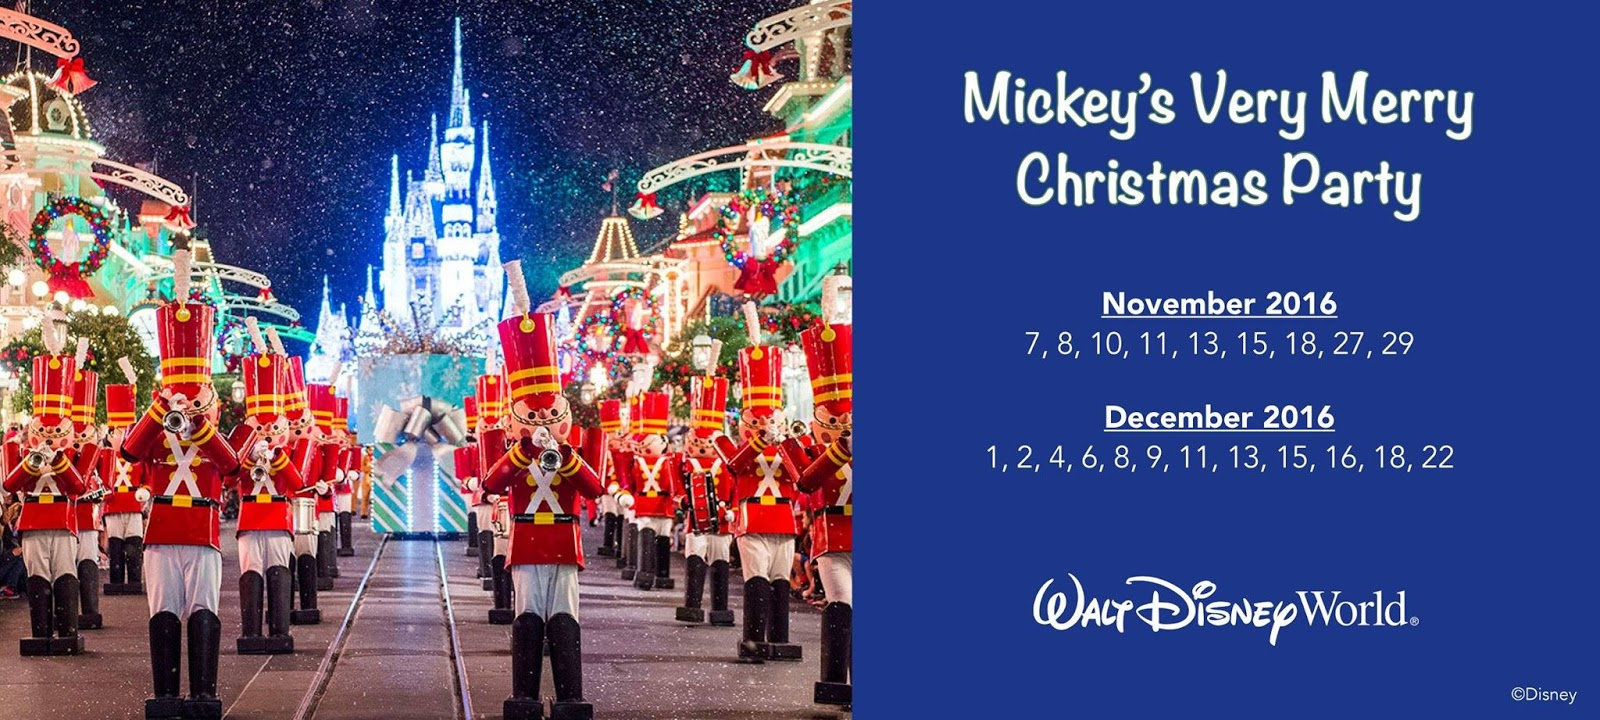 mickeys very merry christmas party 2016 dates